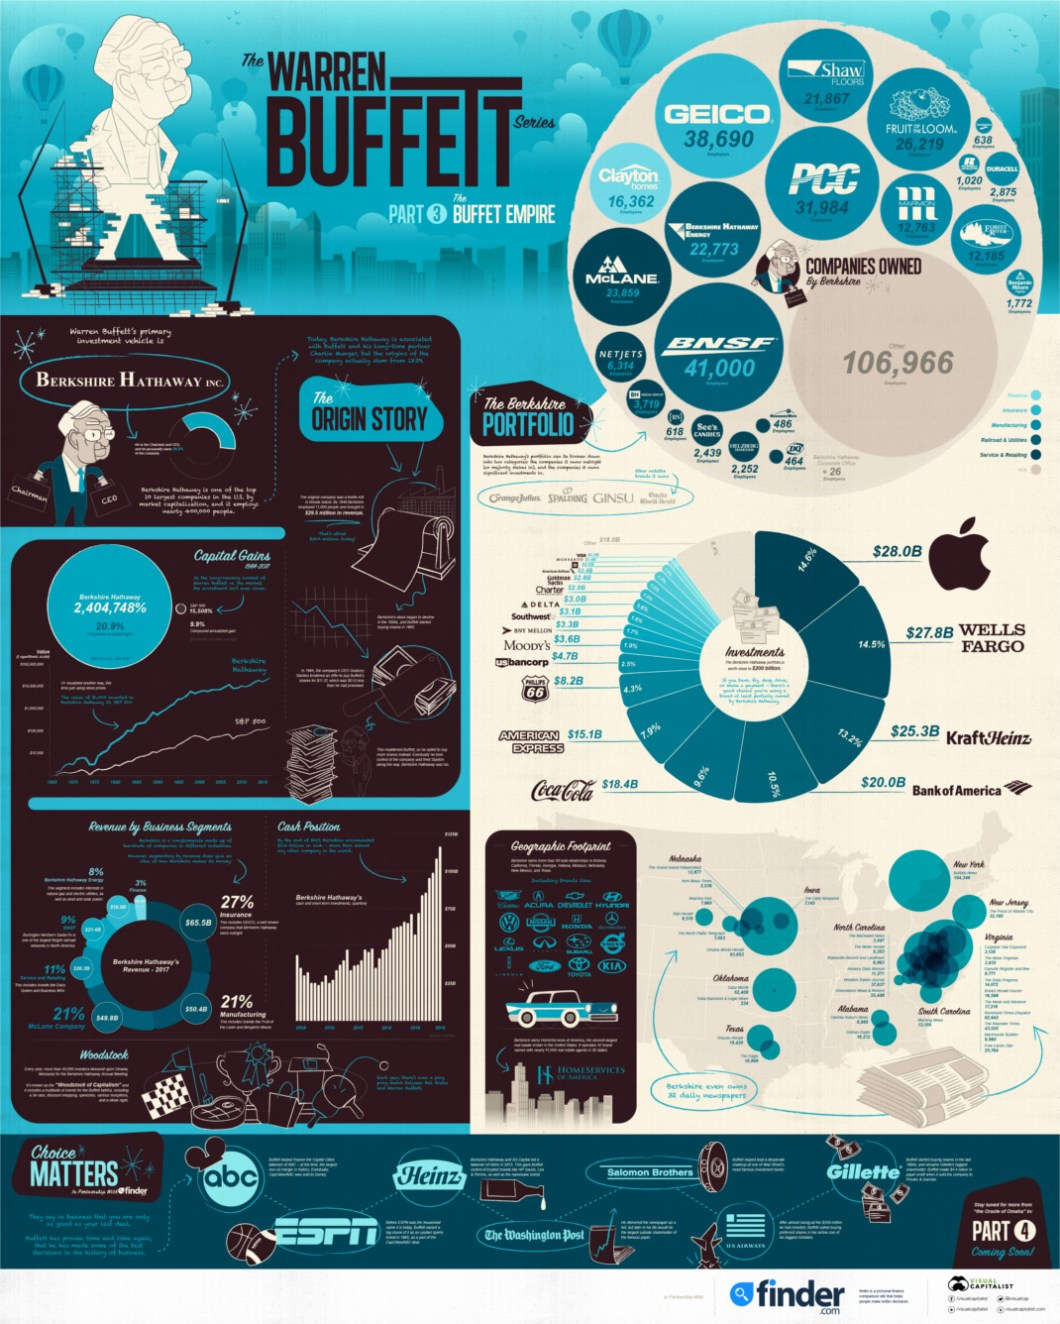 A Visual Guide to the Gigantic Warren Buffet Empire - Infographic